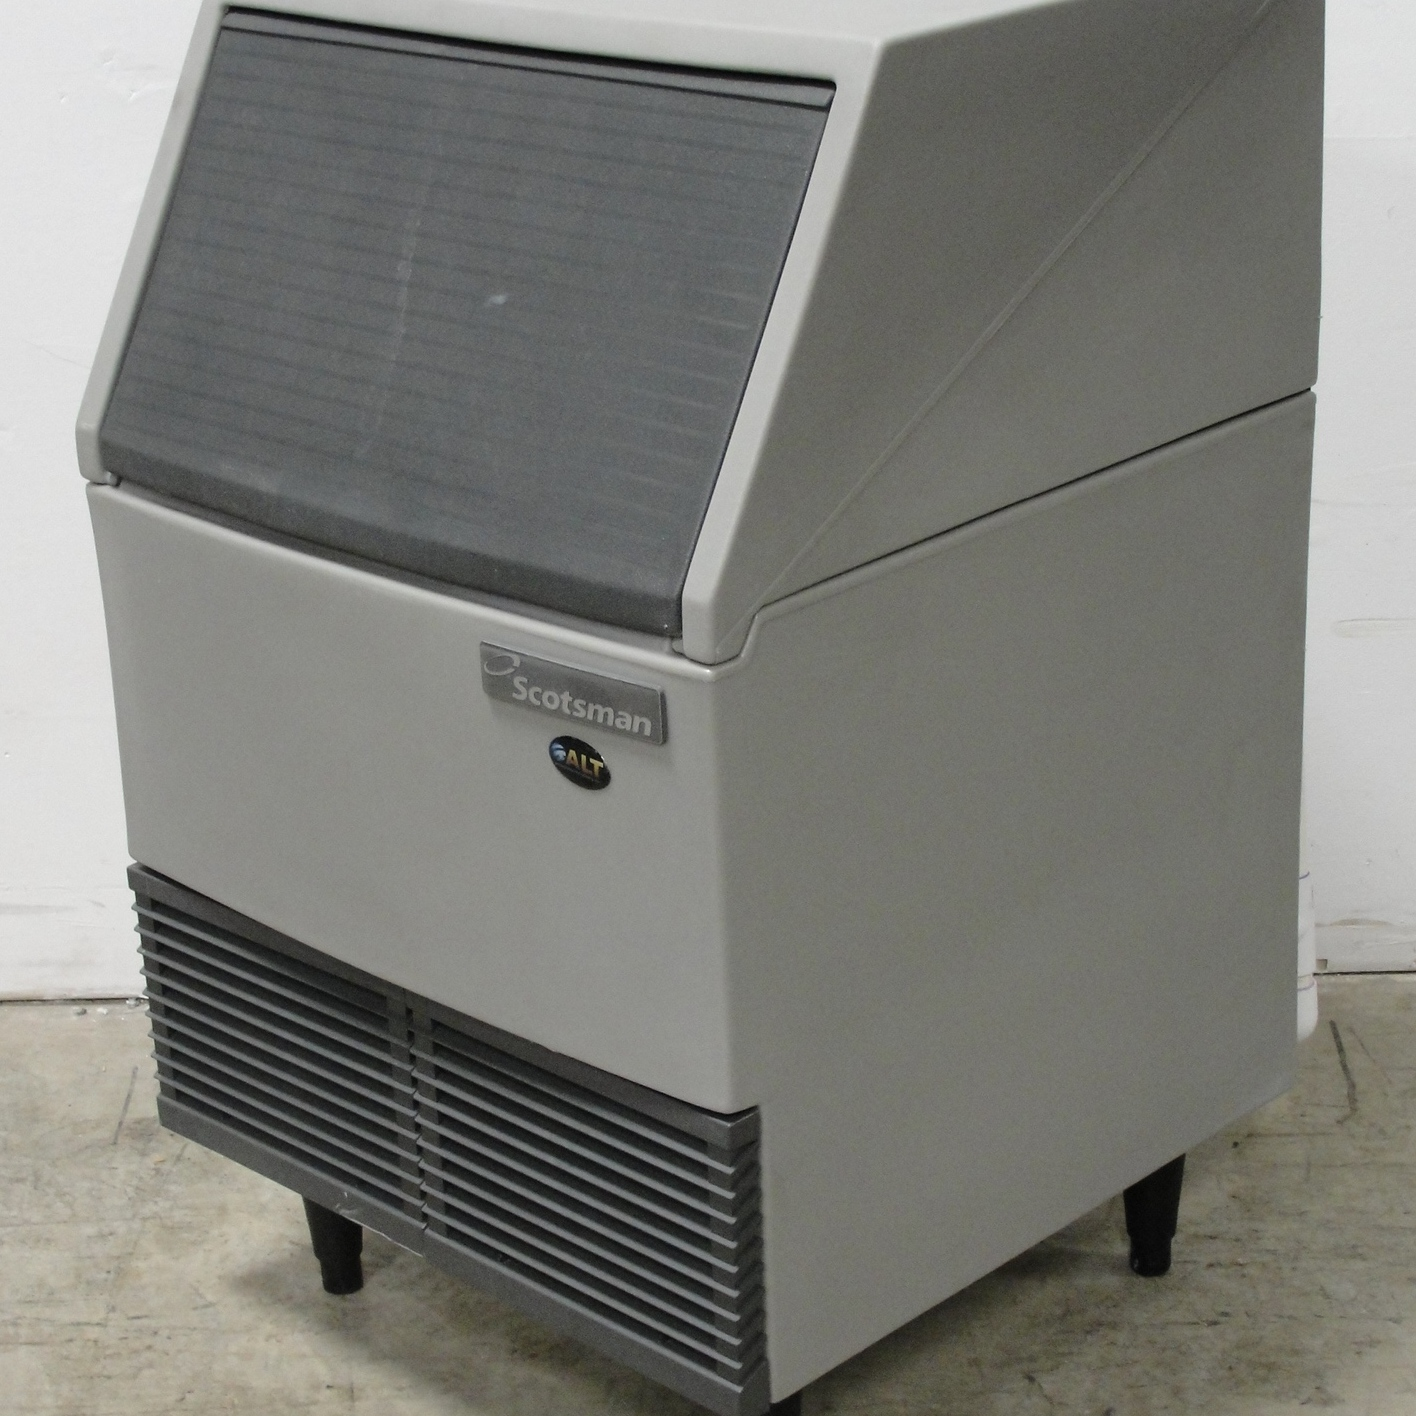 Scotsman SCE170A-1C Undercounter Air-Cooled Ice Maker Image